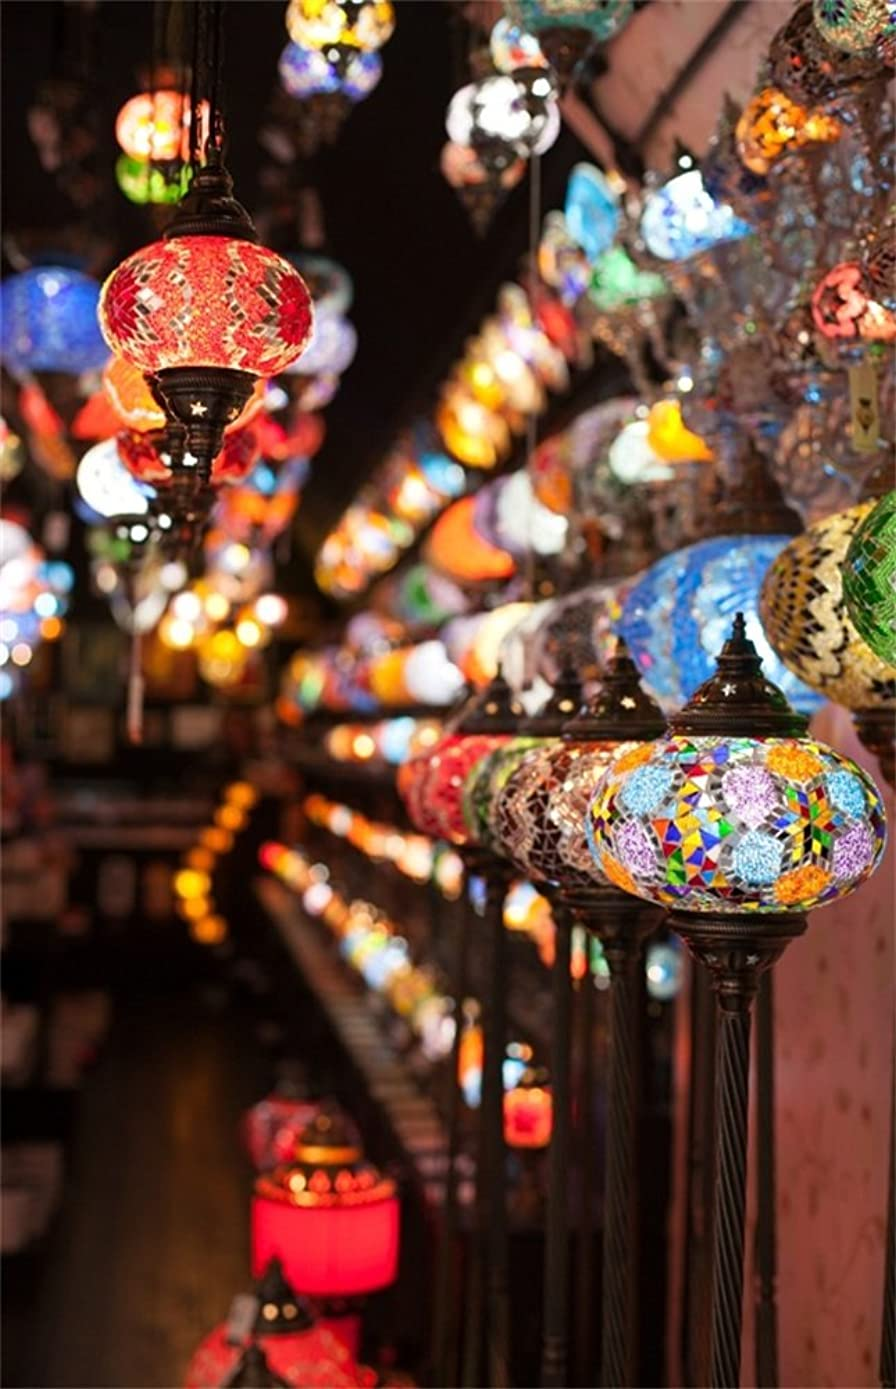 Leowefowa 3X5FT Hanging Colorful Turkish Arabic Glass Lamps Lanterns Range Backdrop Vinyl Photography Background Kids Baby Photo Studio Props